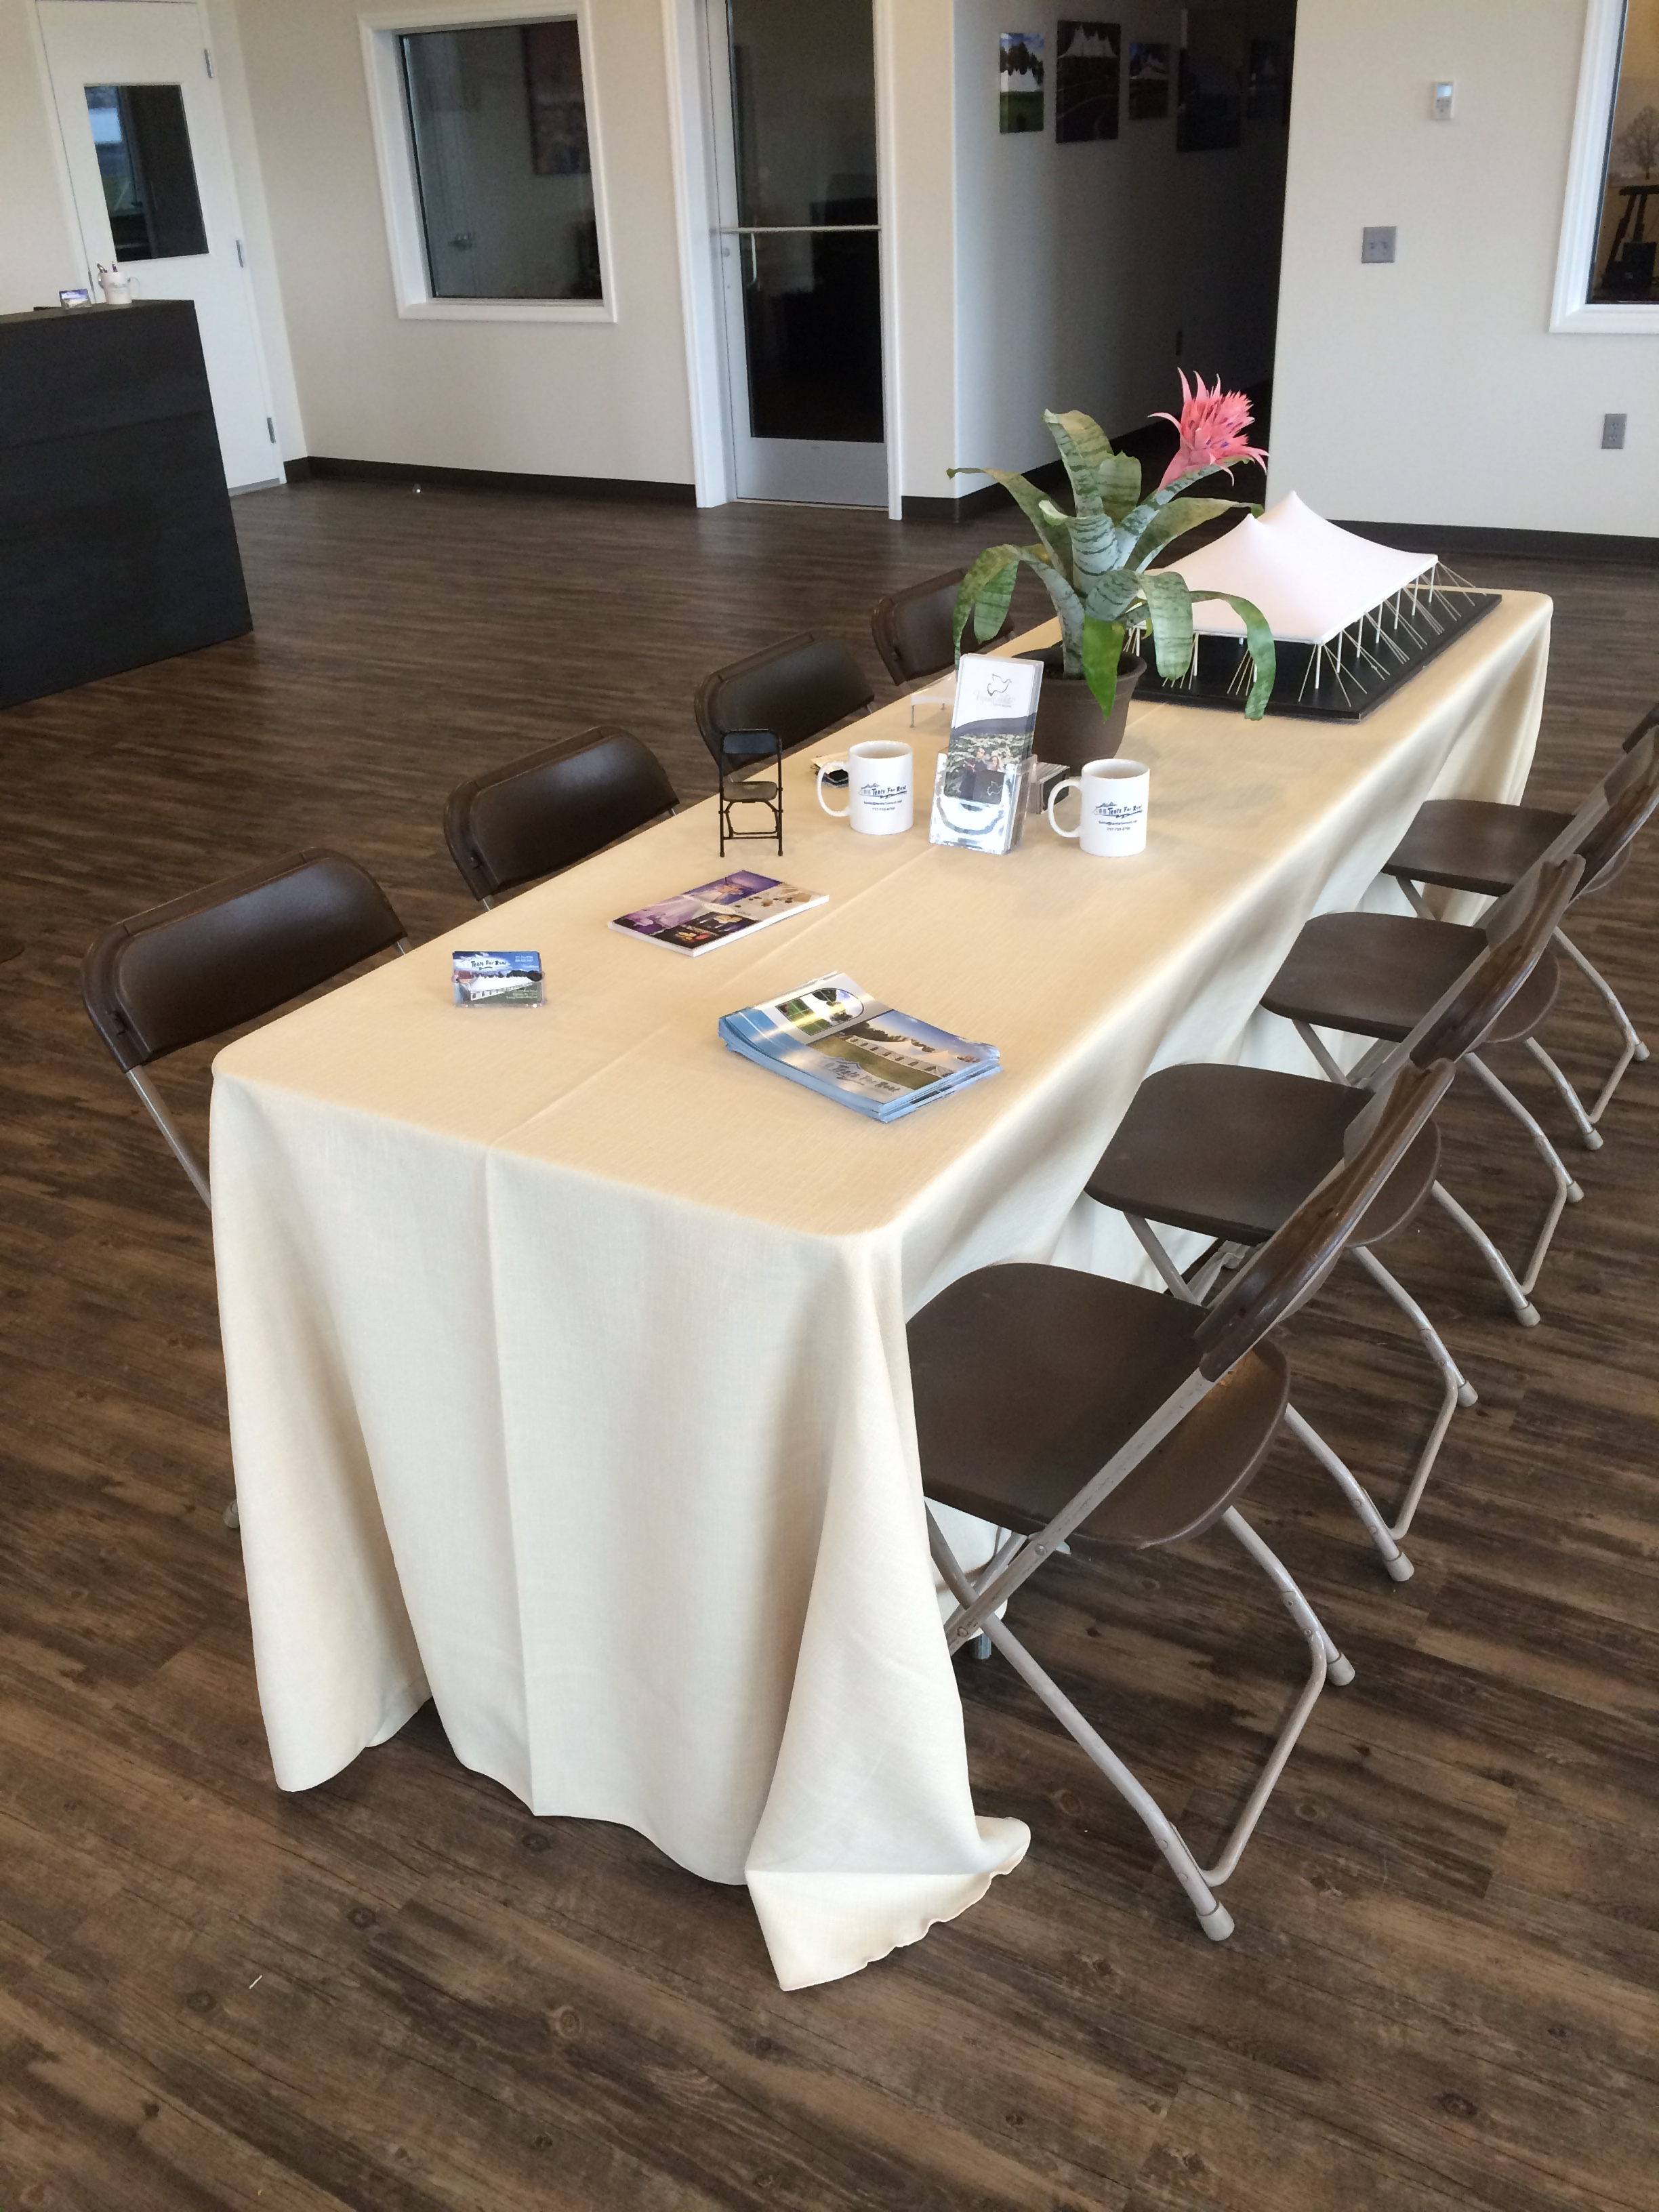 Simple but nice, tables, chairs and linens for your tent or outdoor event.